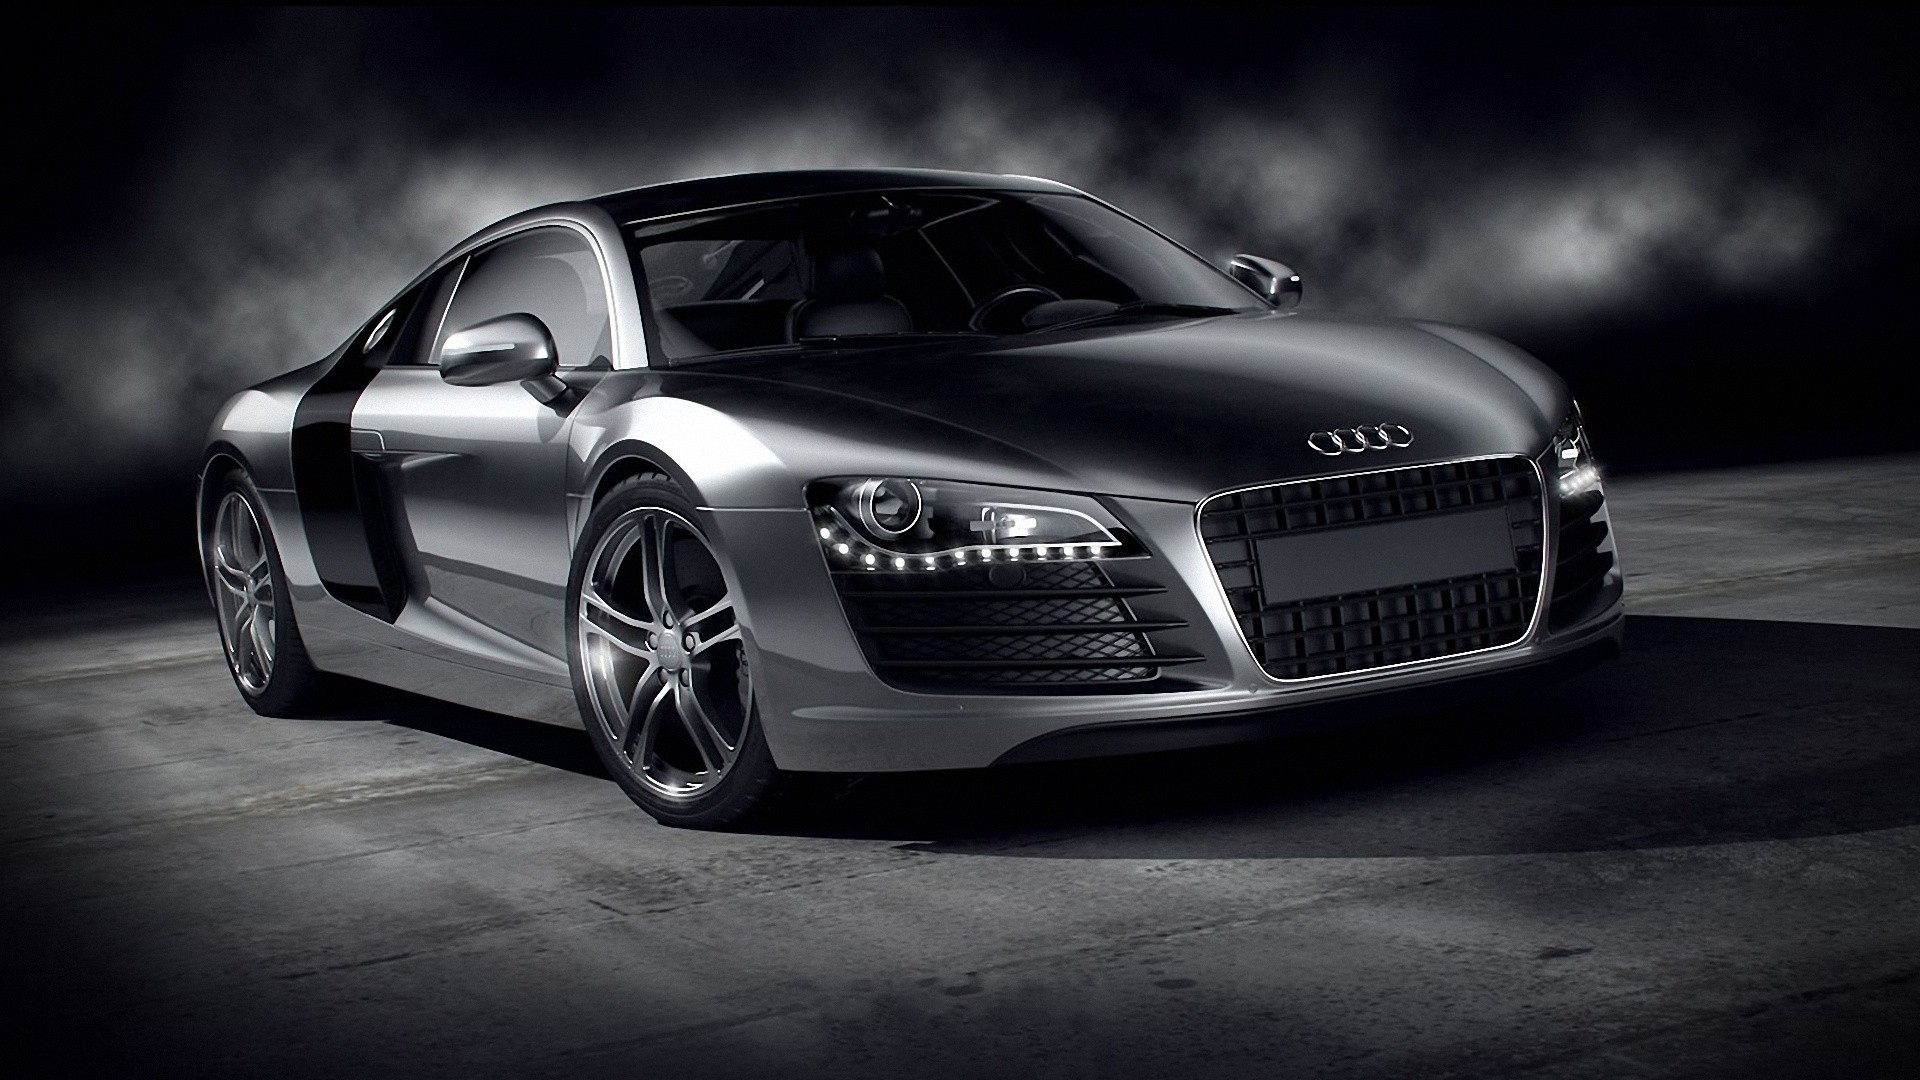 Audi R8 Wallpapers HD 1920x1080